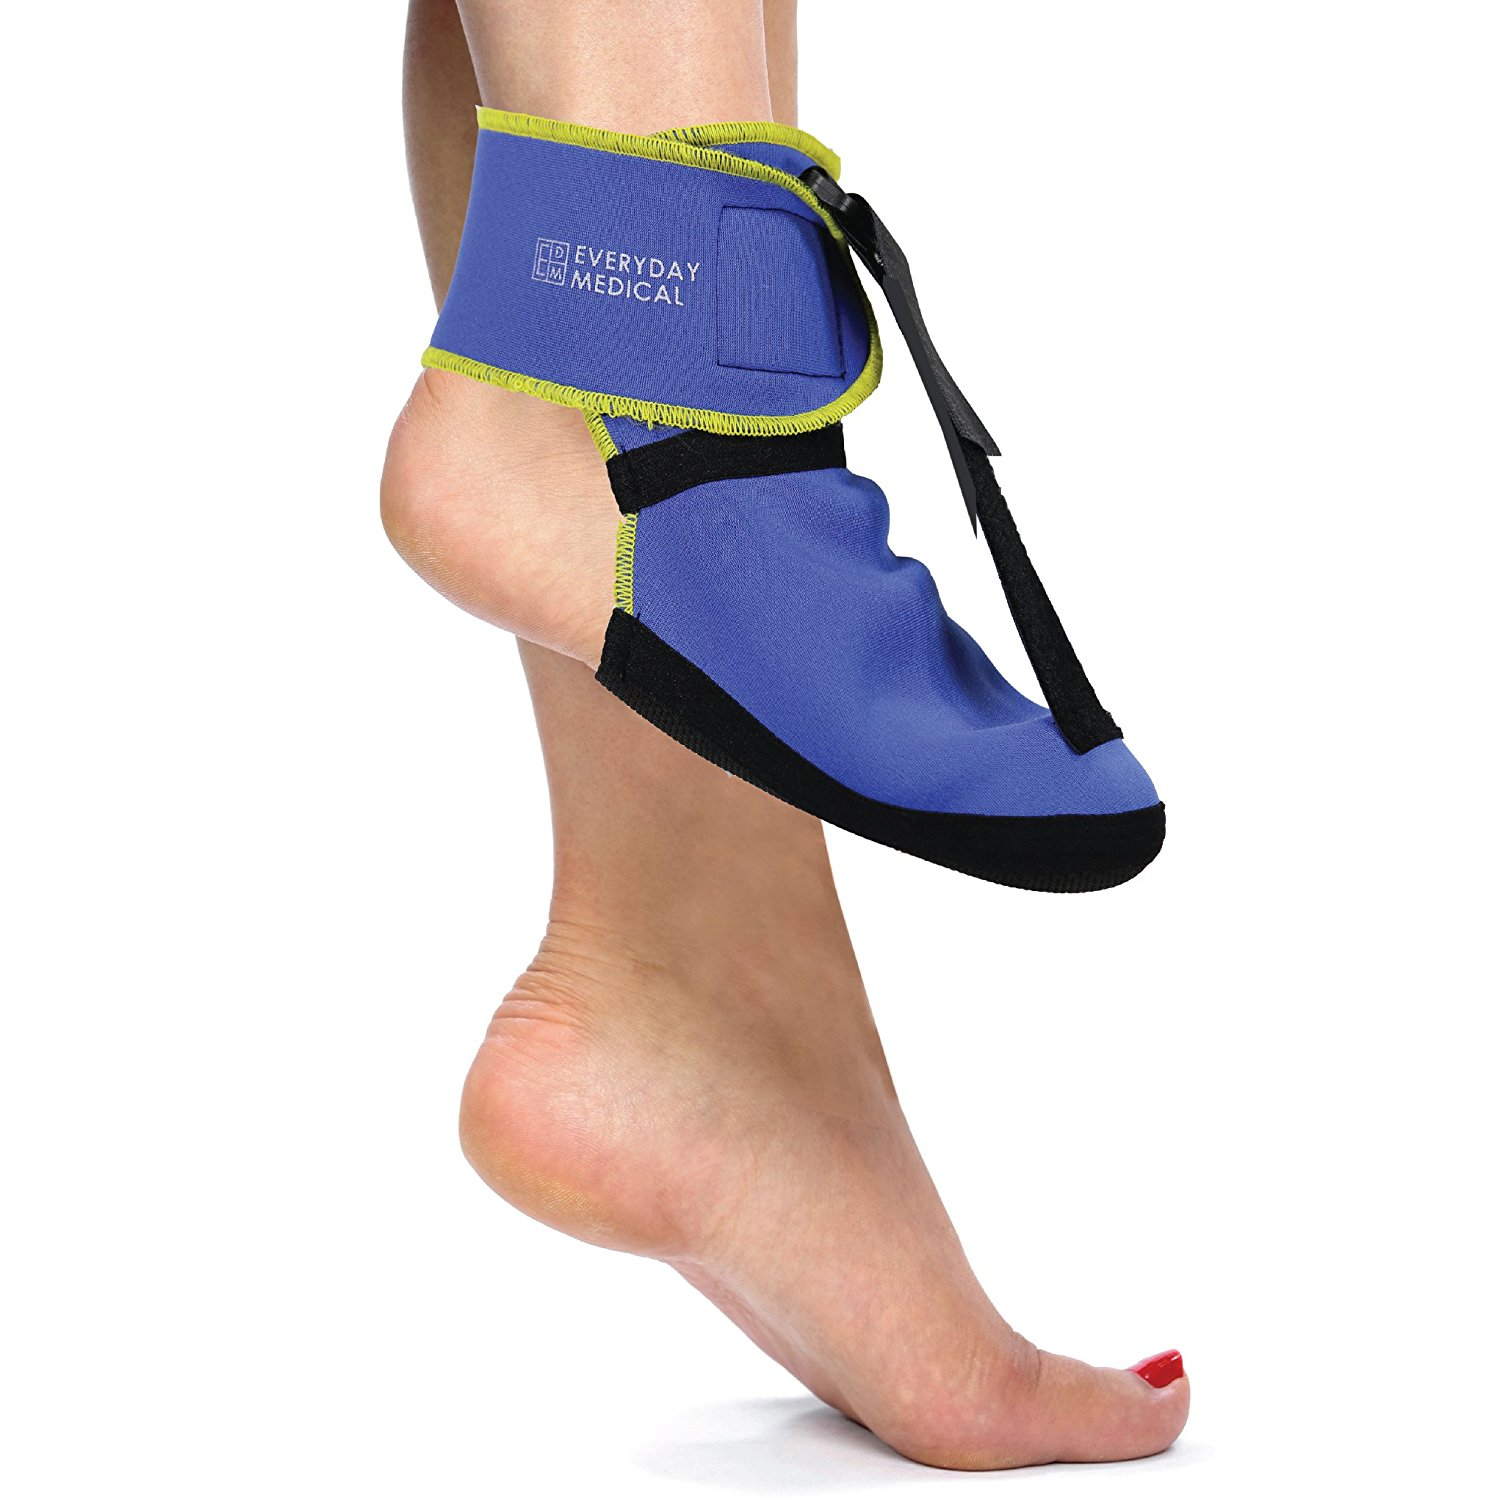 8e7bc809ed Get Quotations · Everyday Medical Plantar Fasciitis Night Stretching Splint,  Plantar Fasciitis Arch Support for Better Stability,